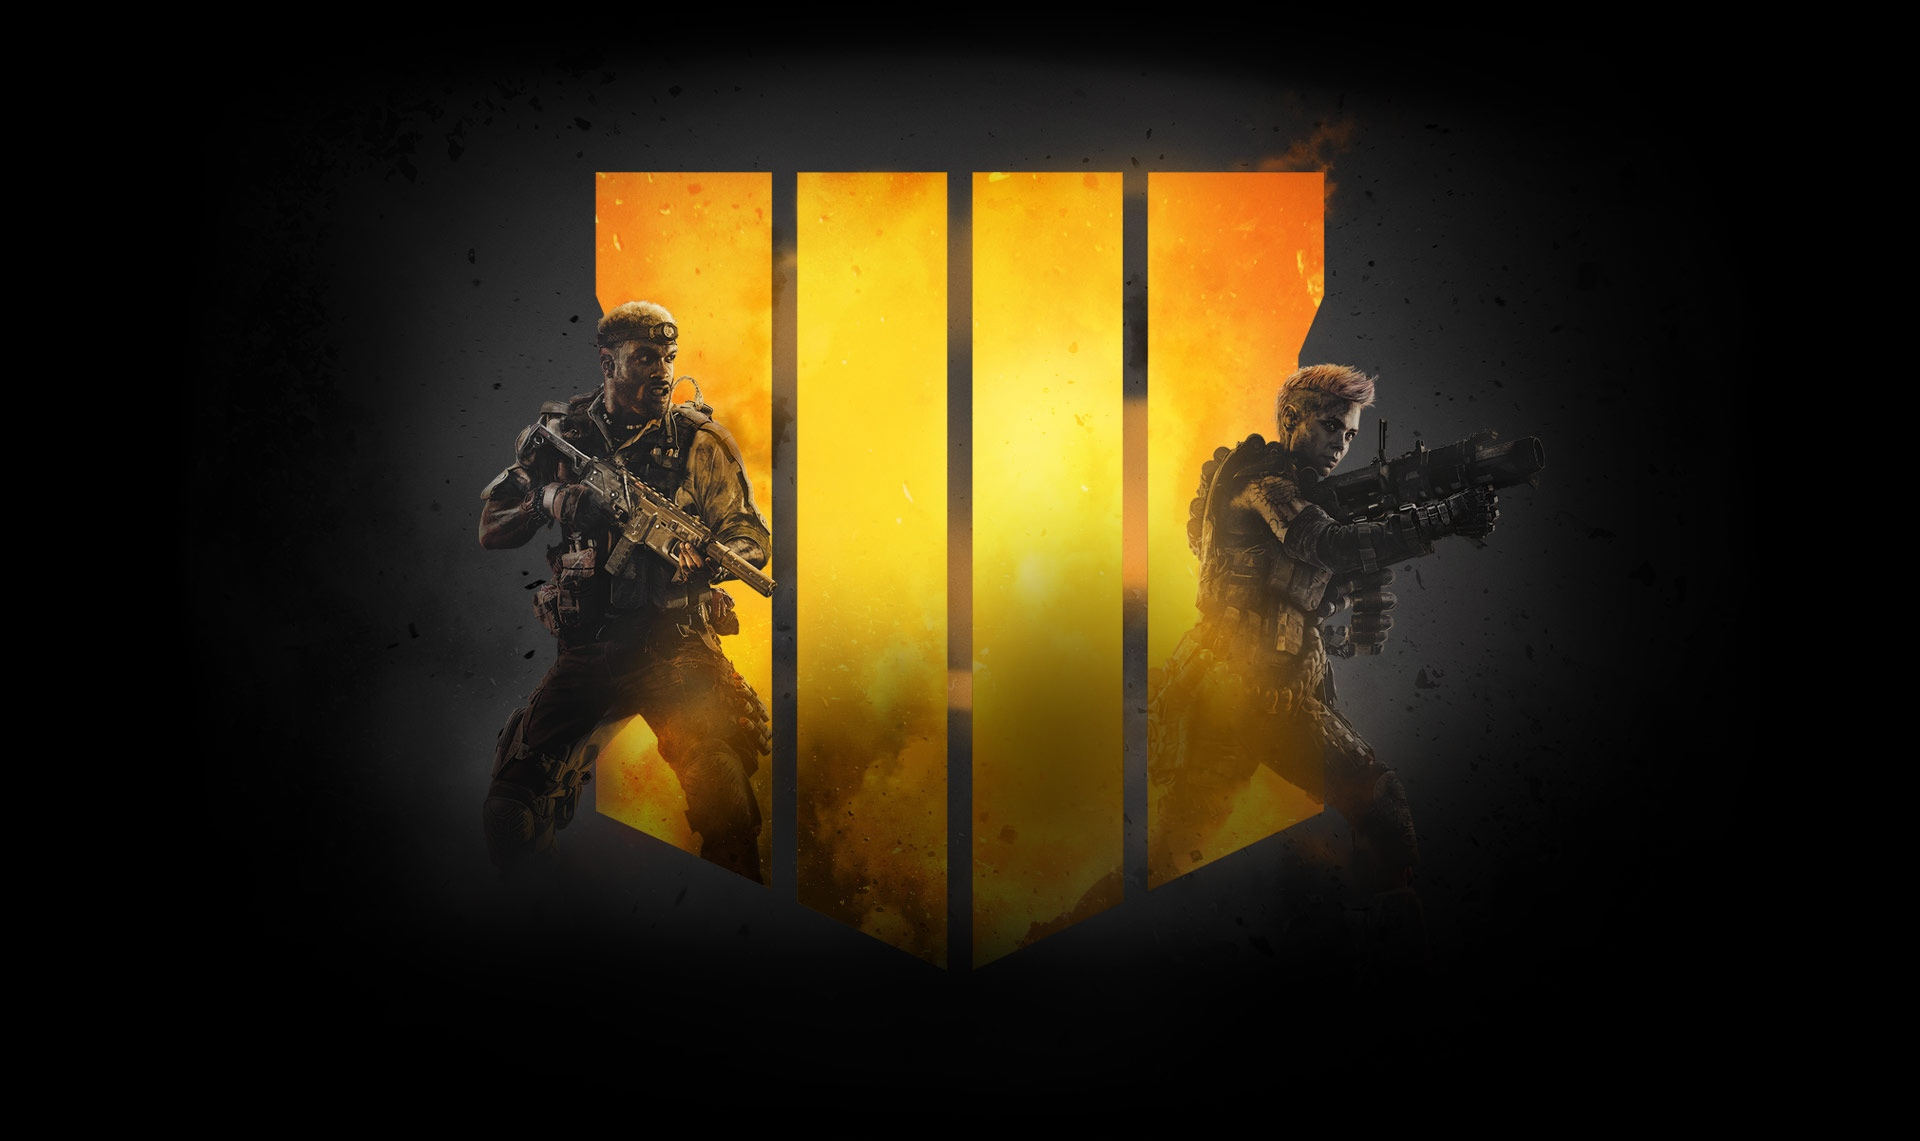 Call Of Duty Black Ops 4 Wallpapers Blackout Wallpapers Gameguidehq